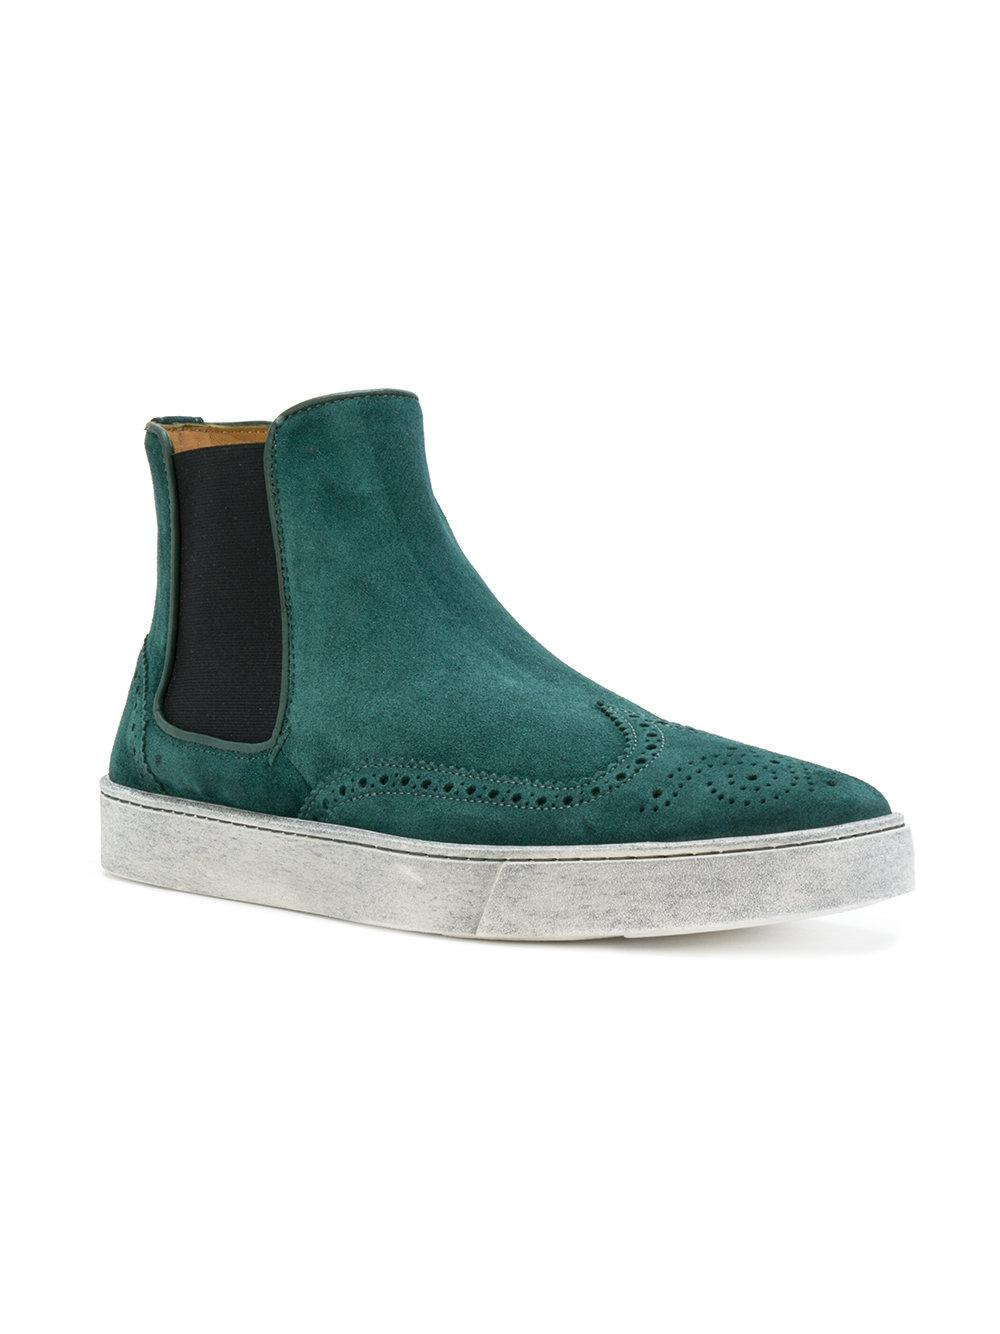 Green In Boots Lyst Santoni Ankle Brogue q4I1X